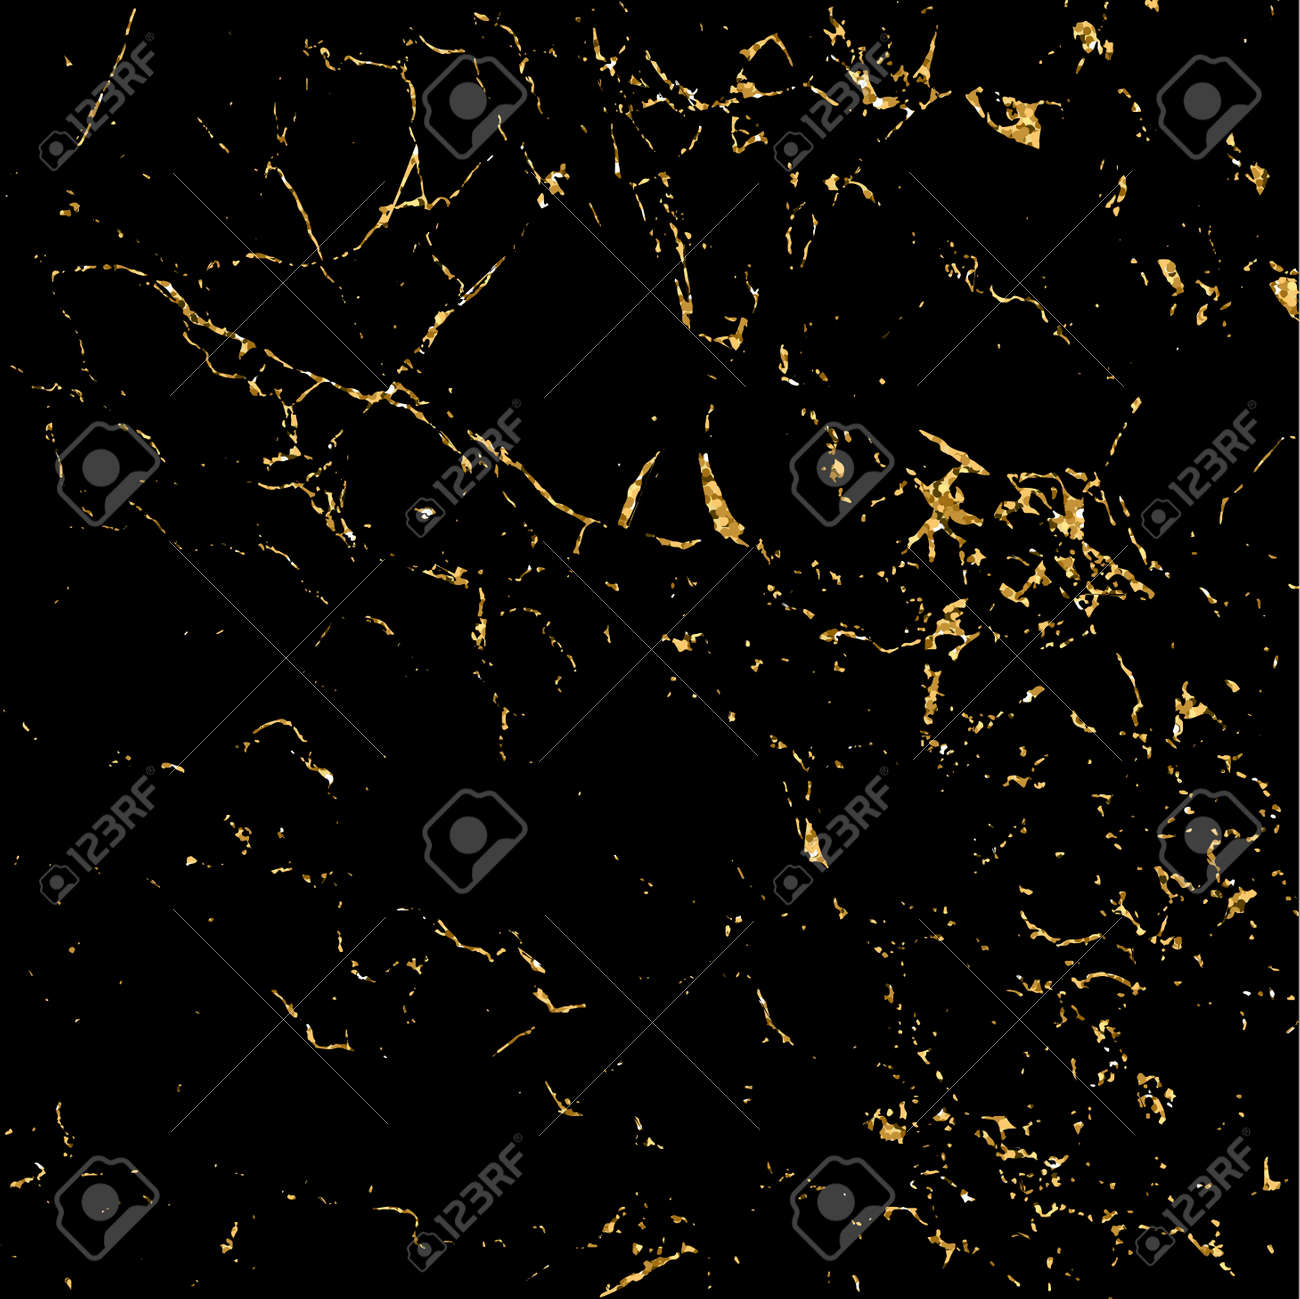 Marble gold grunge texture. Patina scratch golden elements. Sketch surface to create distressed effect. Overlay distress grain graphic design. Stylish modern background decoration. Vector illustration - 59955269